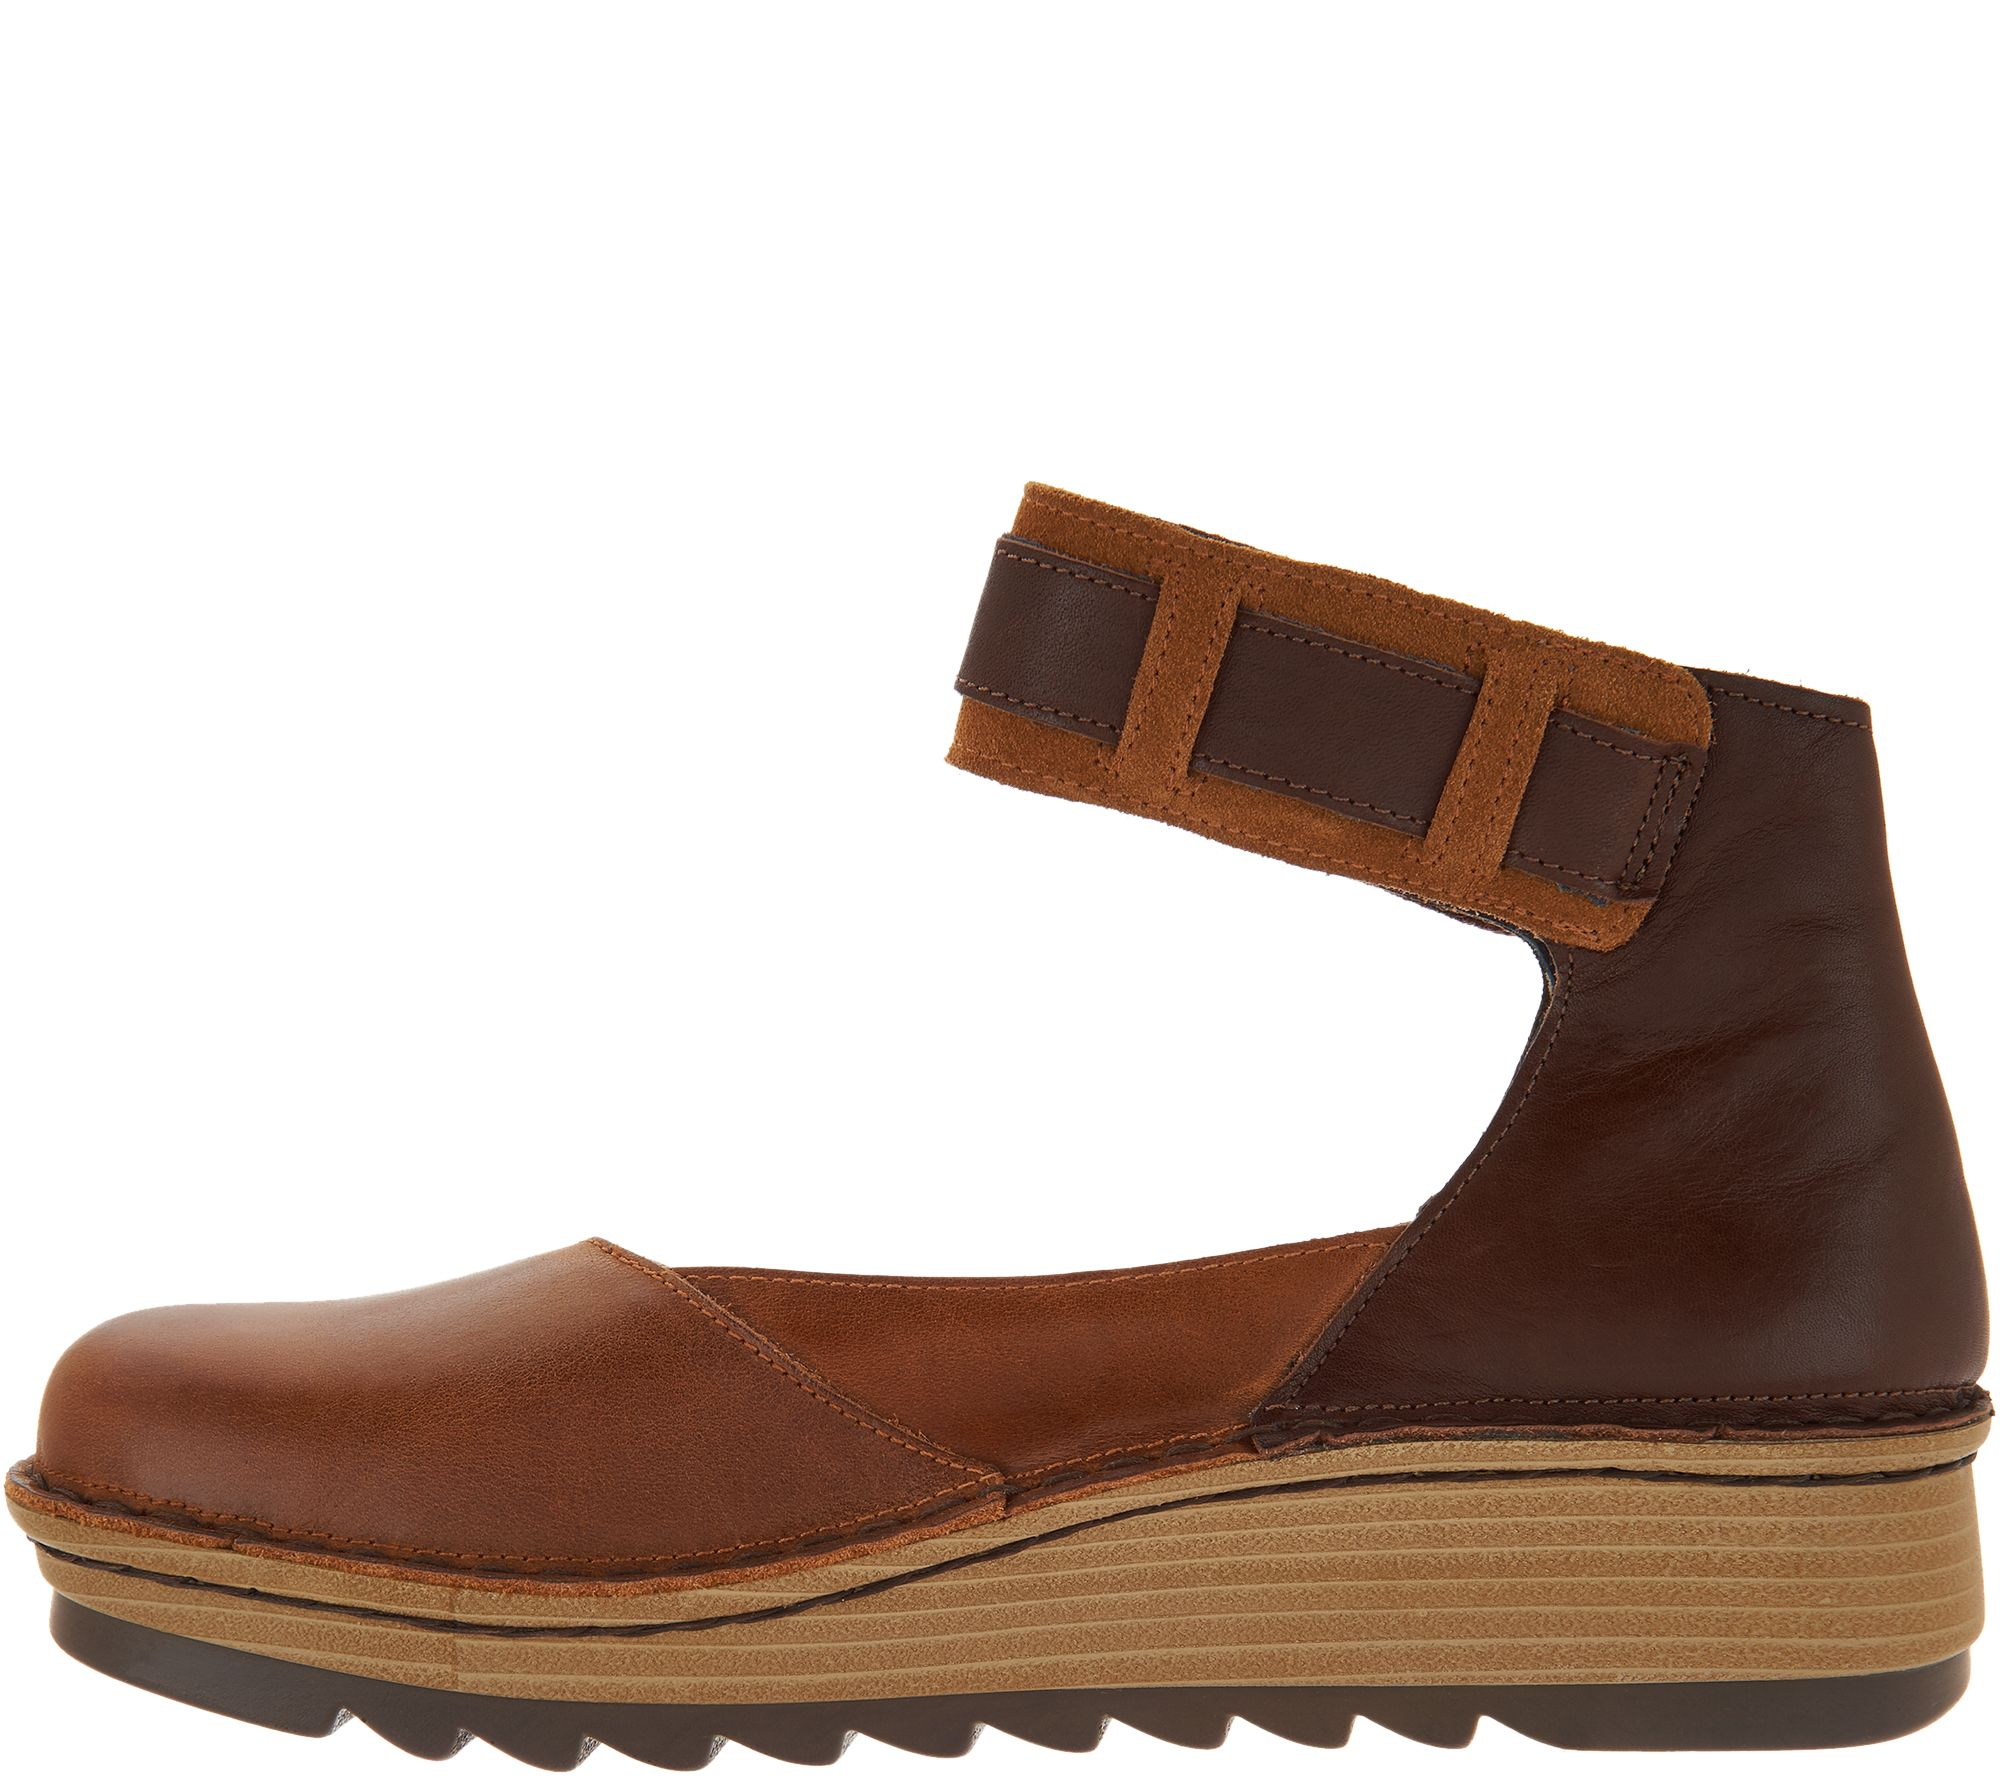 Naot Leather Colorblocked Slip-on Shoes w  Ankle Strap - Sycamore - Page 1  — QVC.com d88d50a83ea